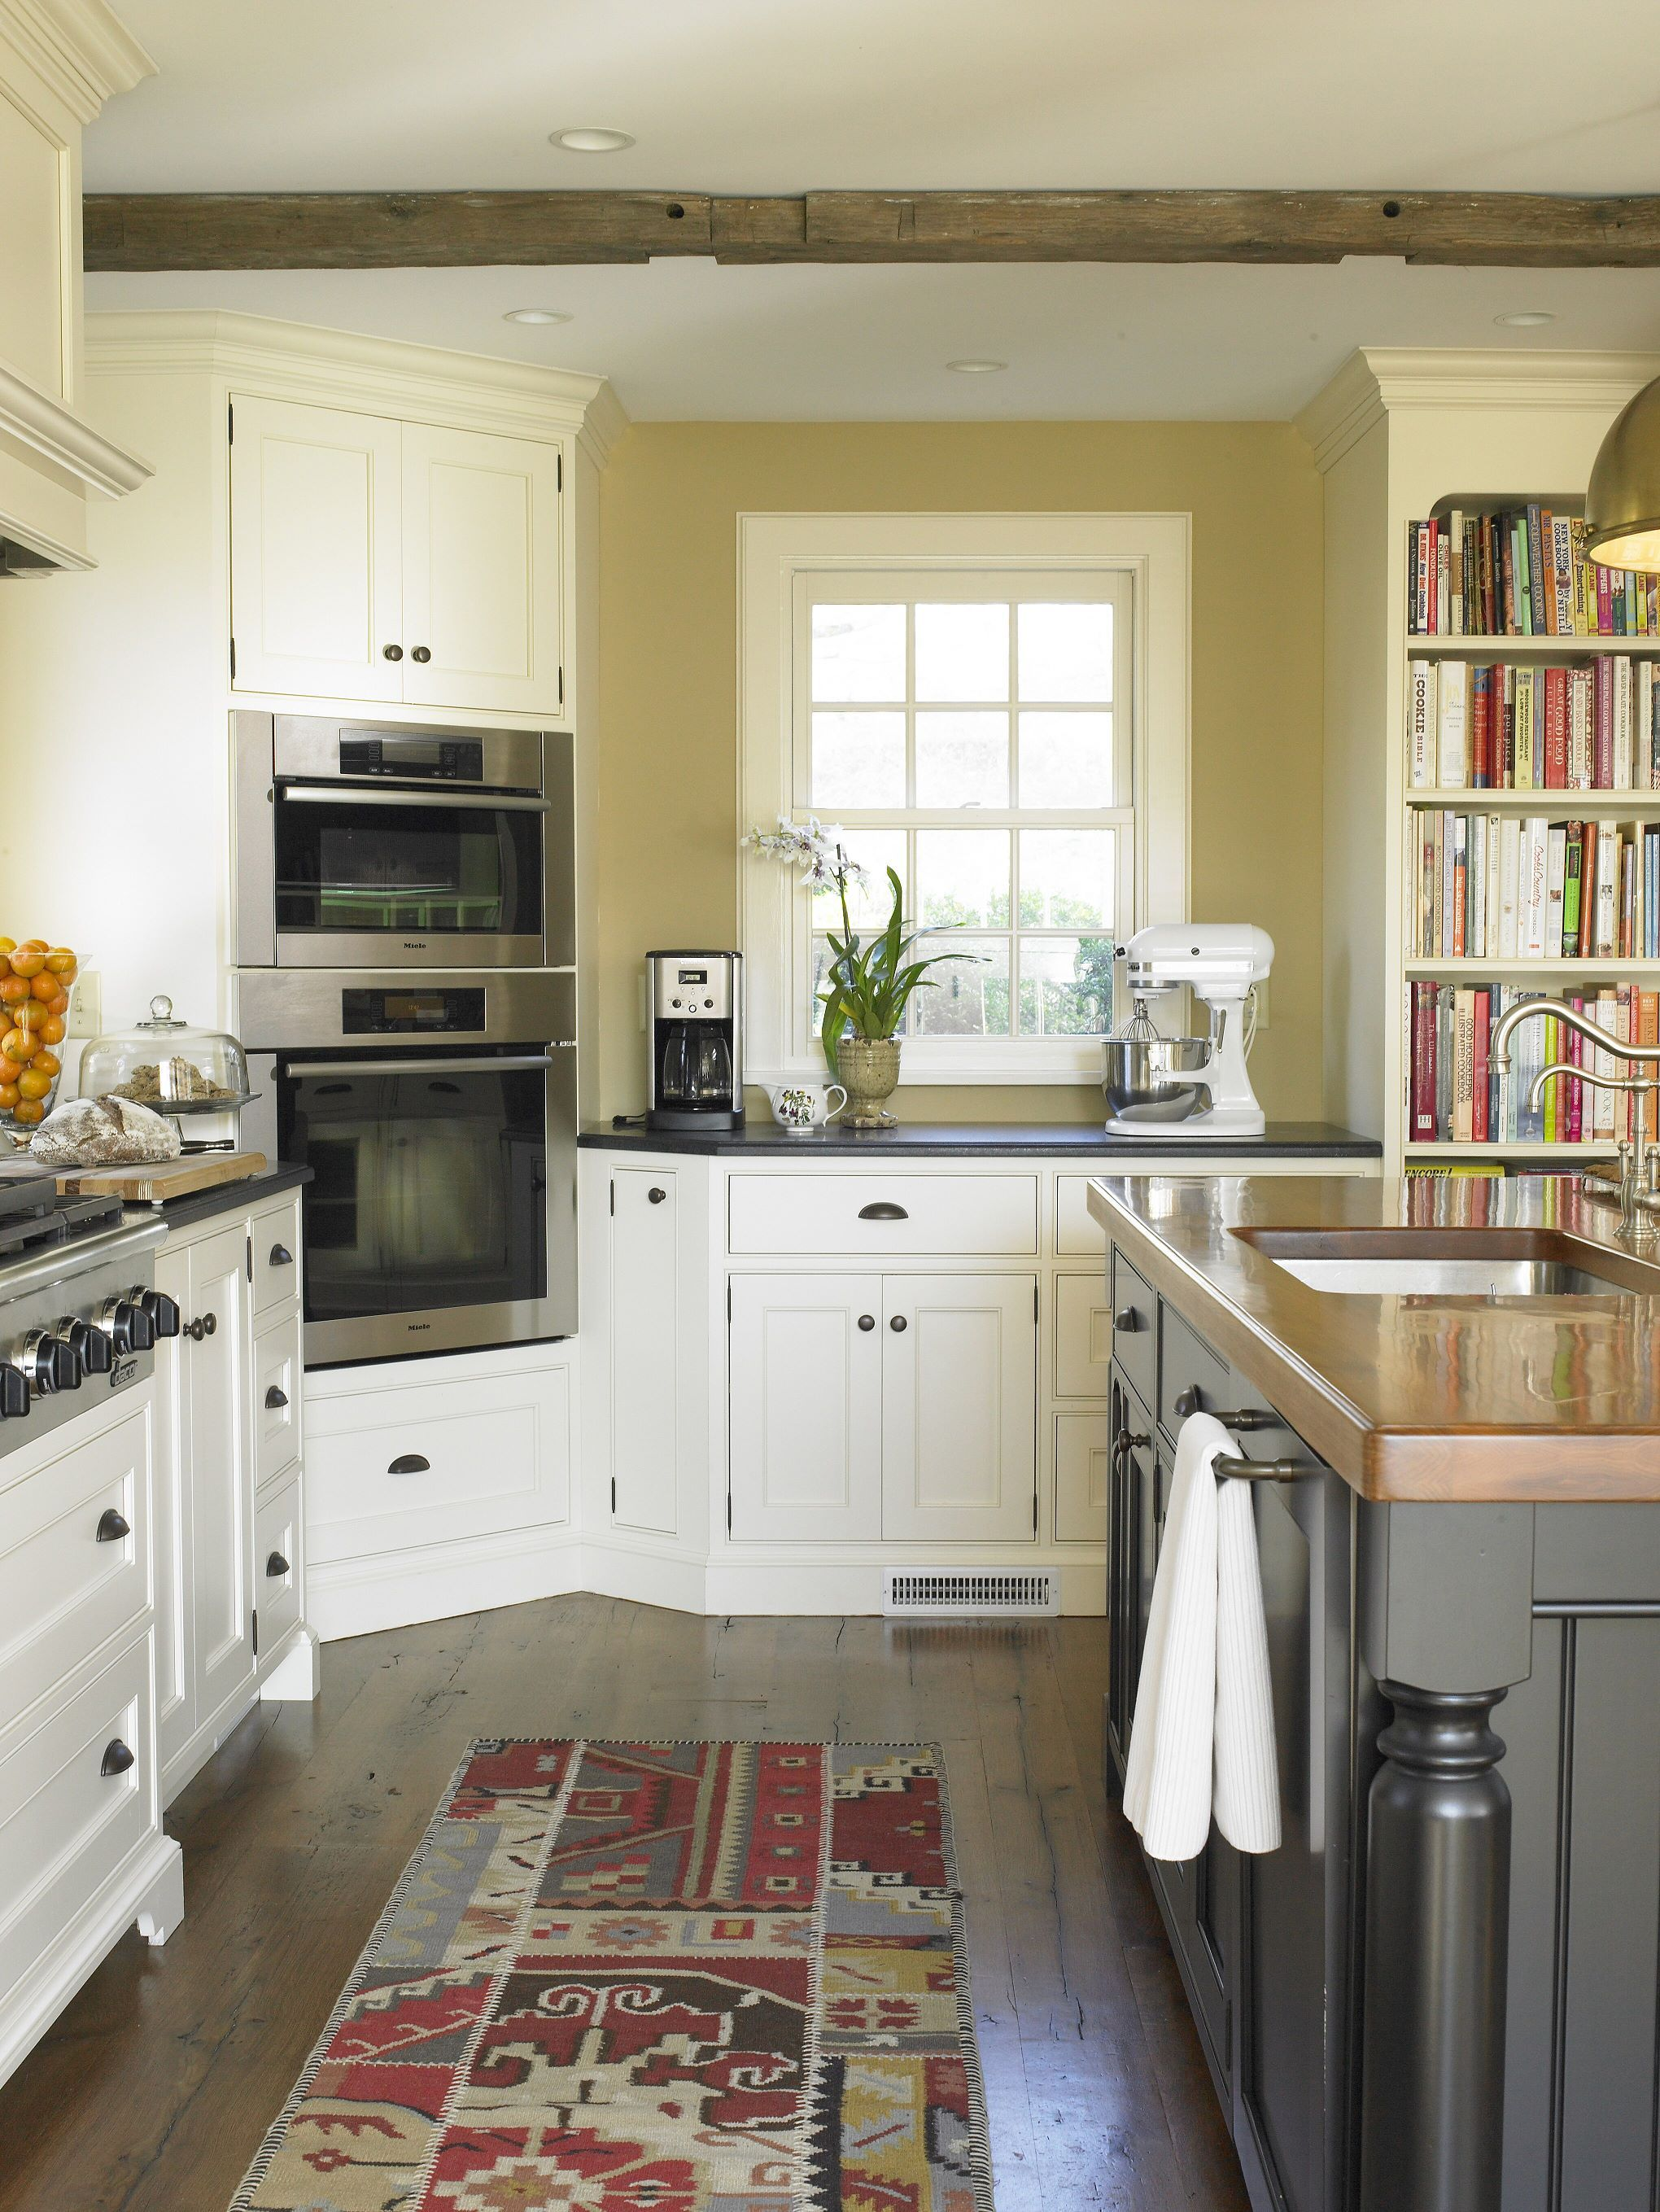 Traditional Kitchens | Contemporary Kitchens | Traditional Kitchens ...